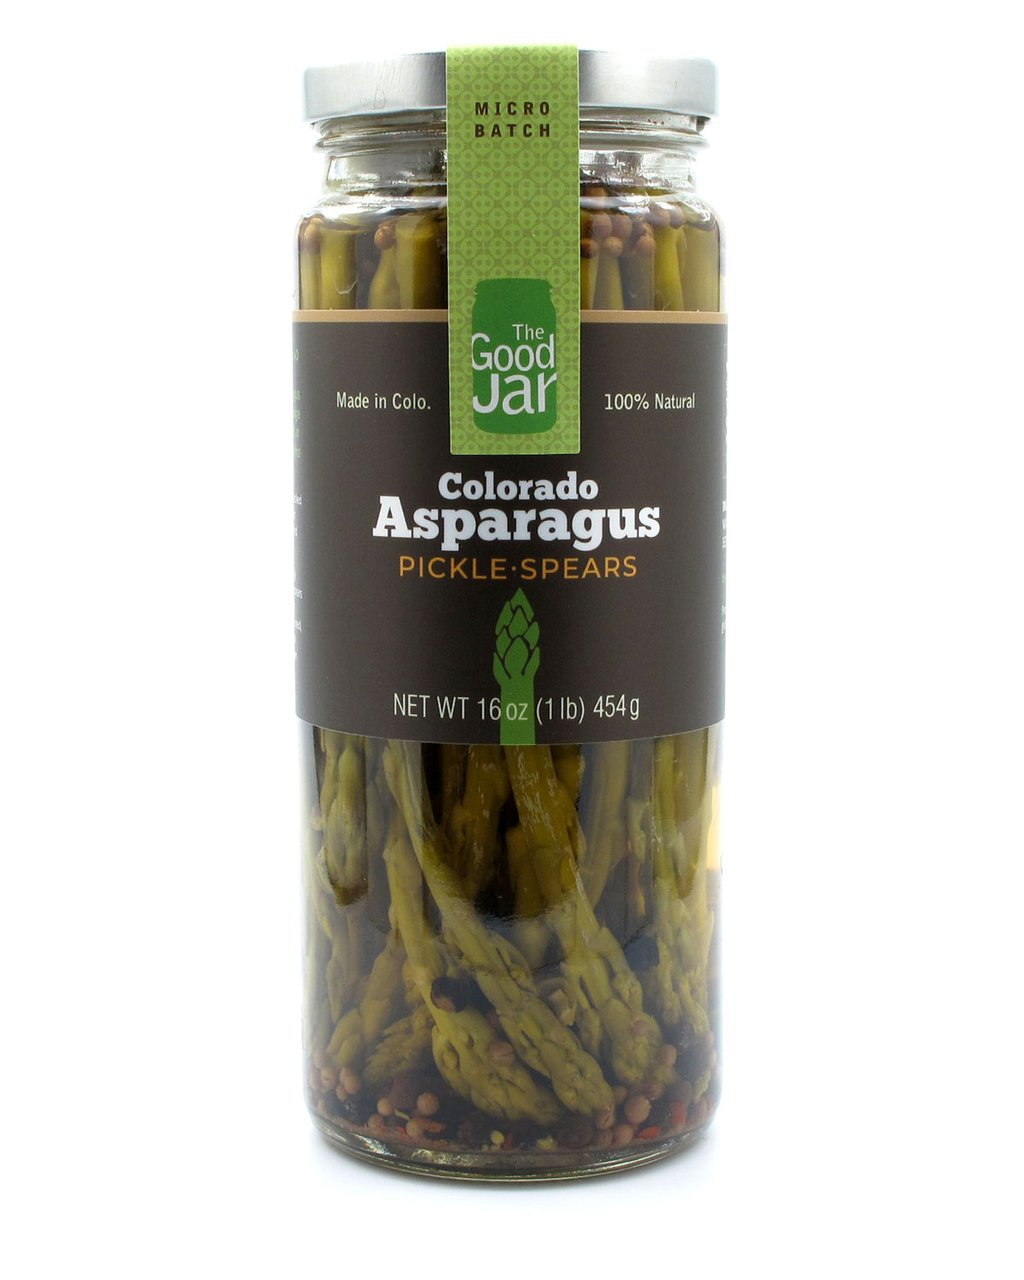 The Good Jar Asparagus Pickle Spears